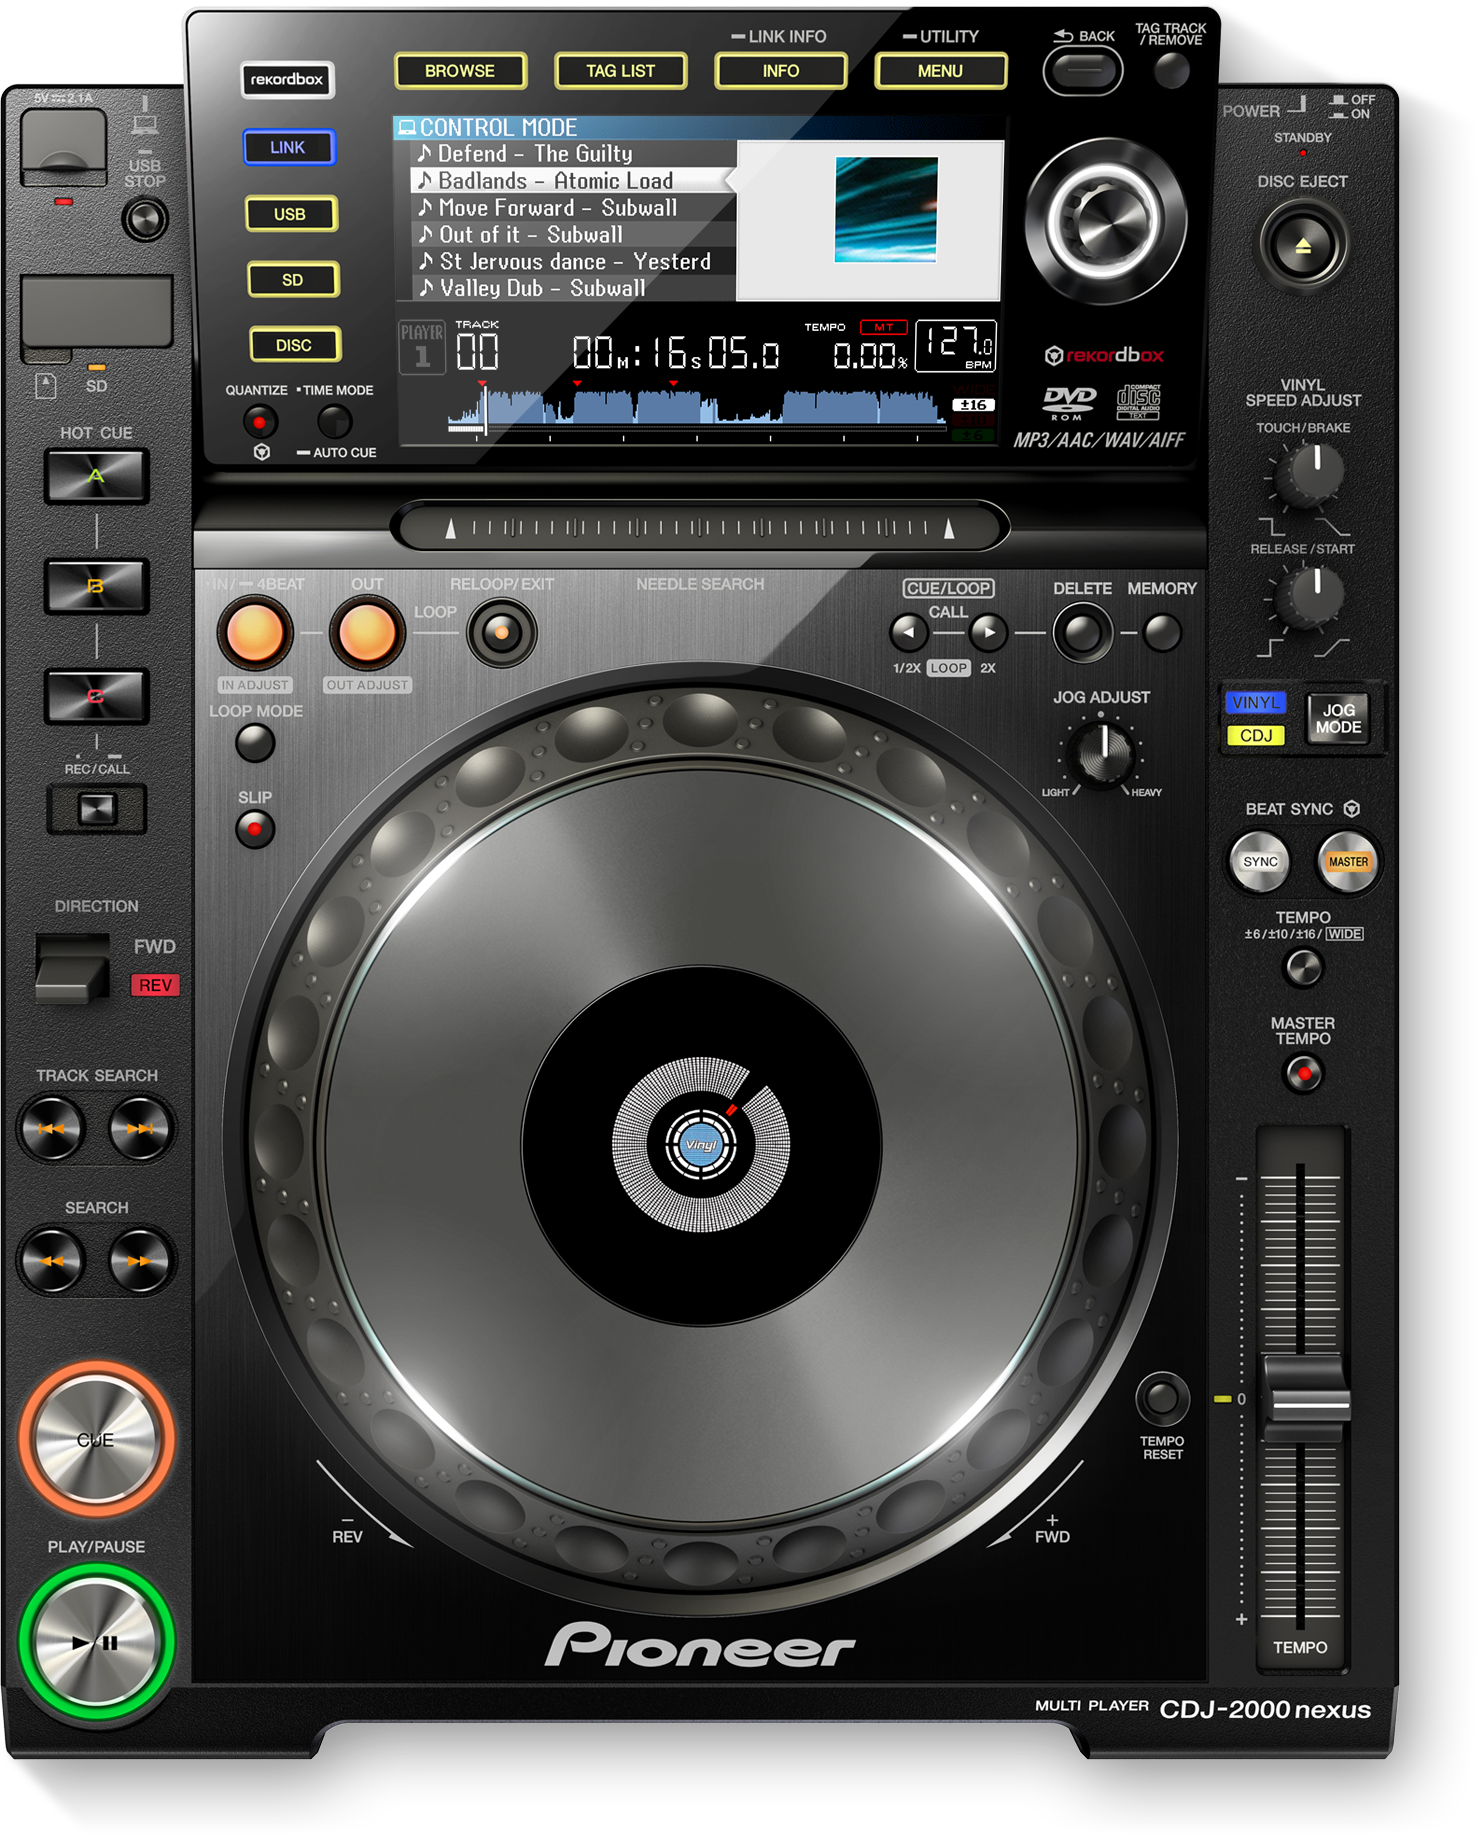 Download firmware or software for CDJ-2000NXS - Pioneer DJ